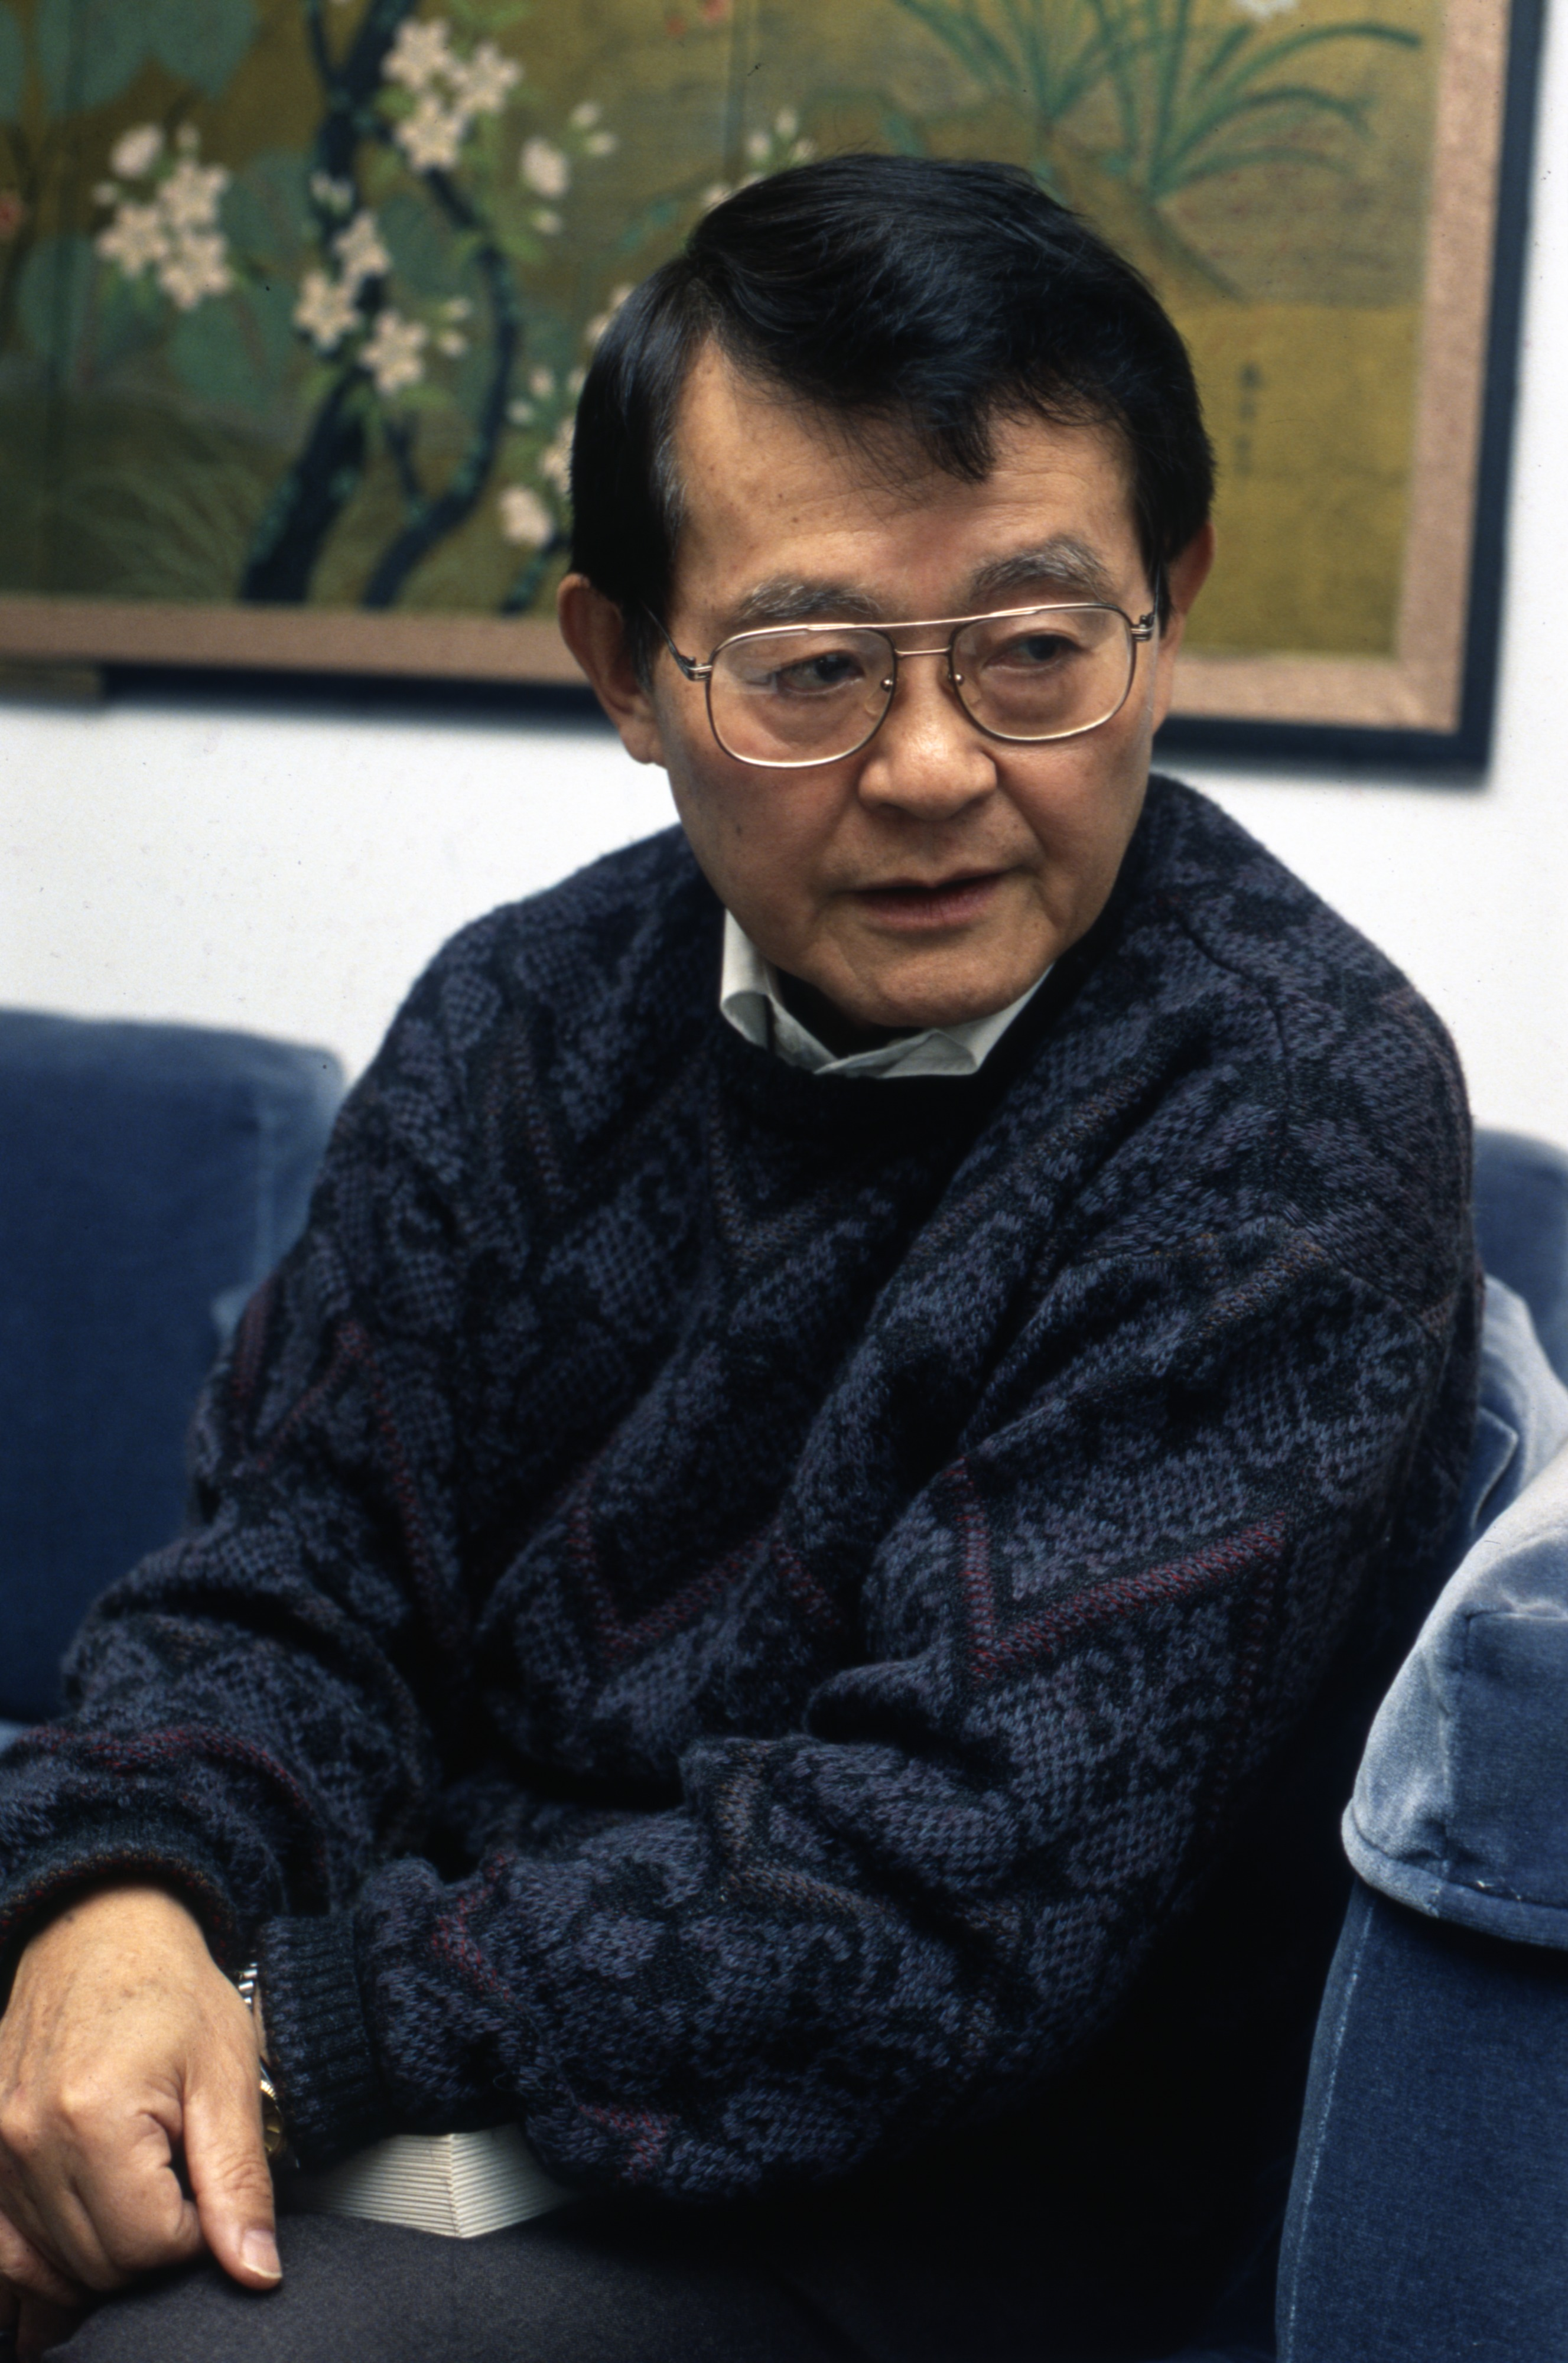 Dr. Yuzuru Takeshita, Professor at U-M & Japanese Internment Camp Survivor, December 8, 1991 image